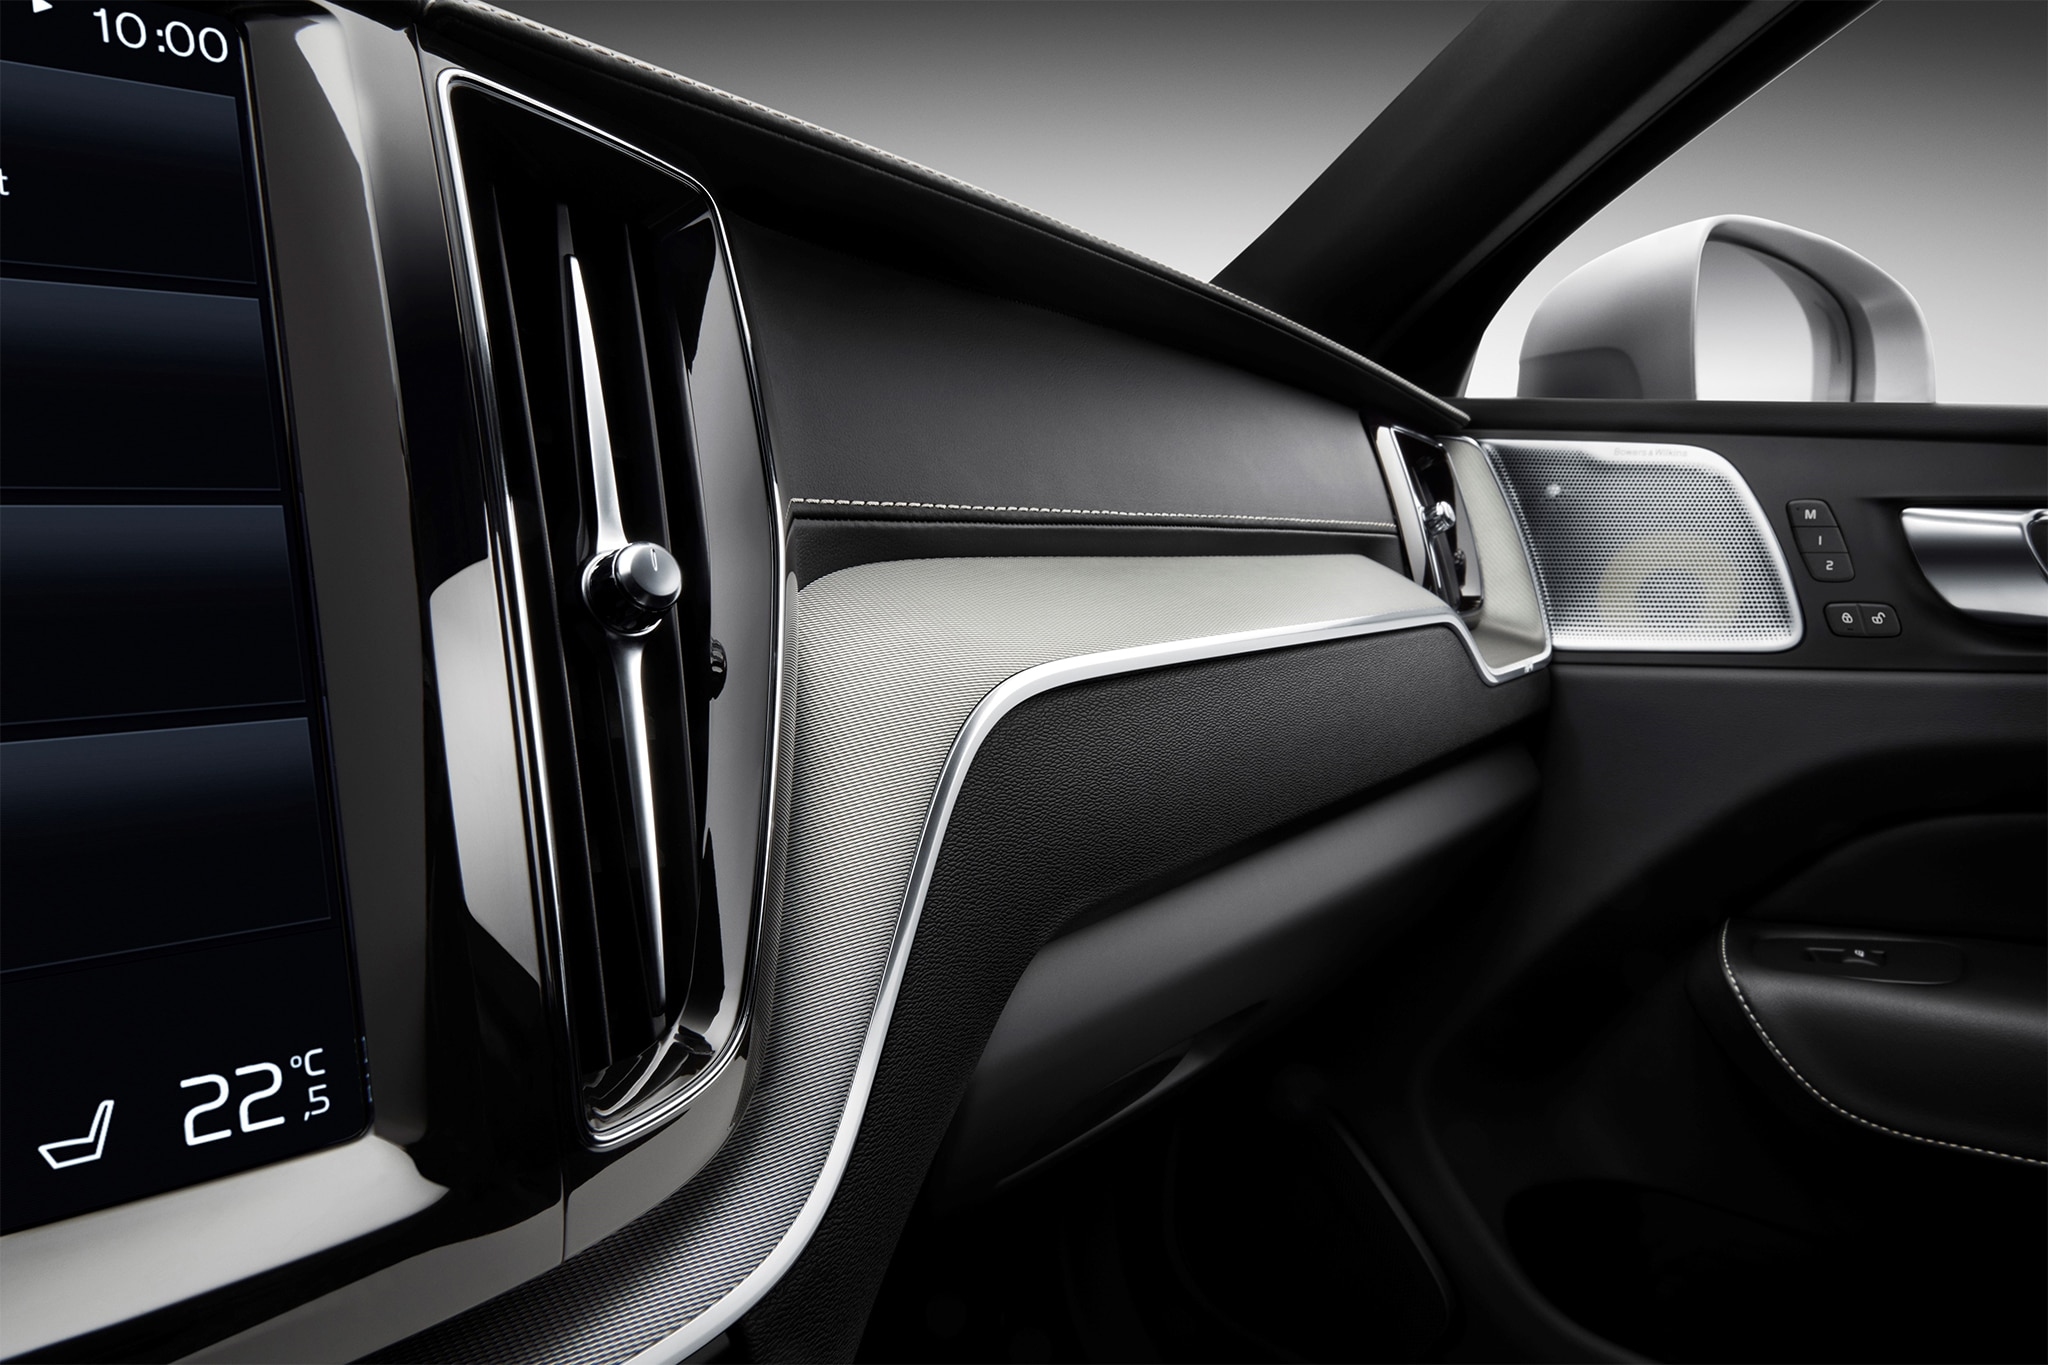 2018 volvo momentum.  2018 whether the base momentum is more within budget or sporty rdesign  just too fly to let slip thereu0027s a good case for each trim and enough  throughout 2018 volvo momentum u